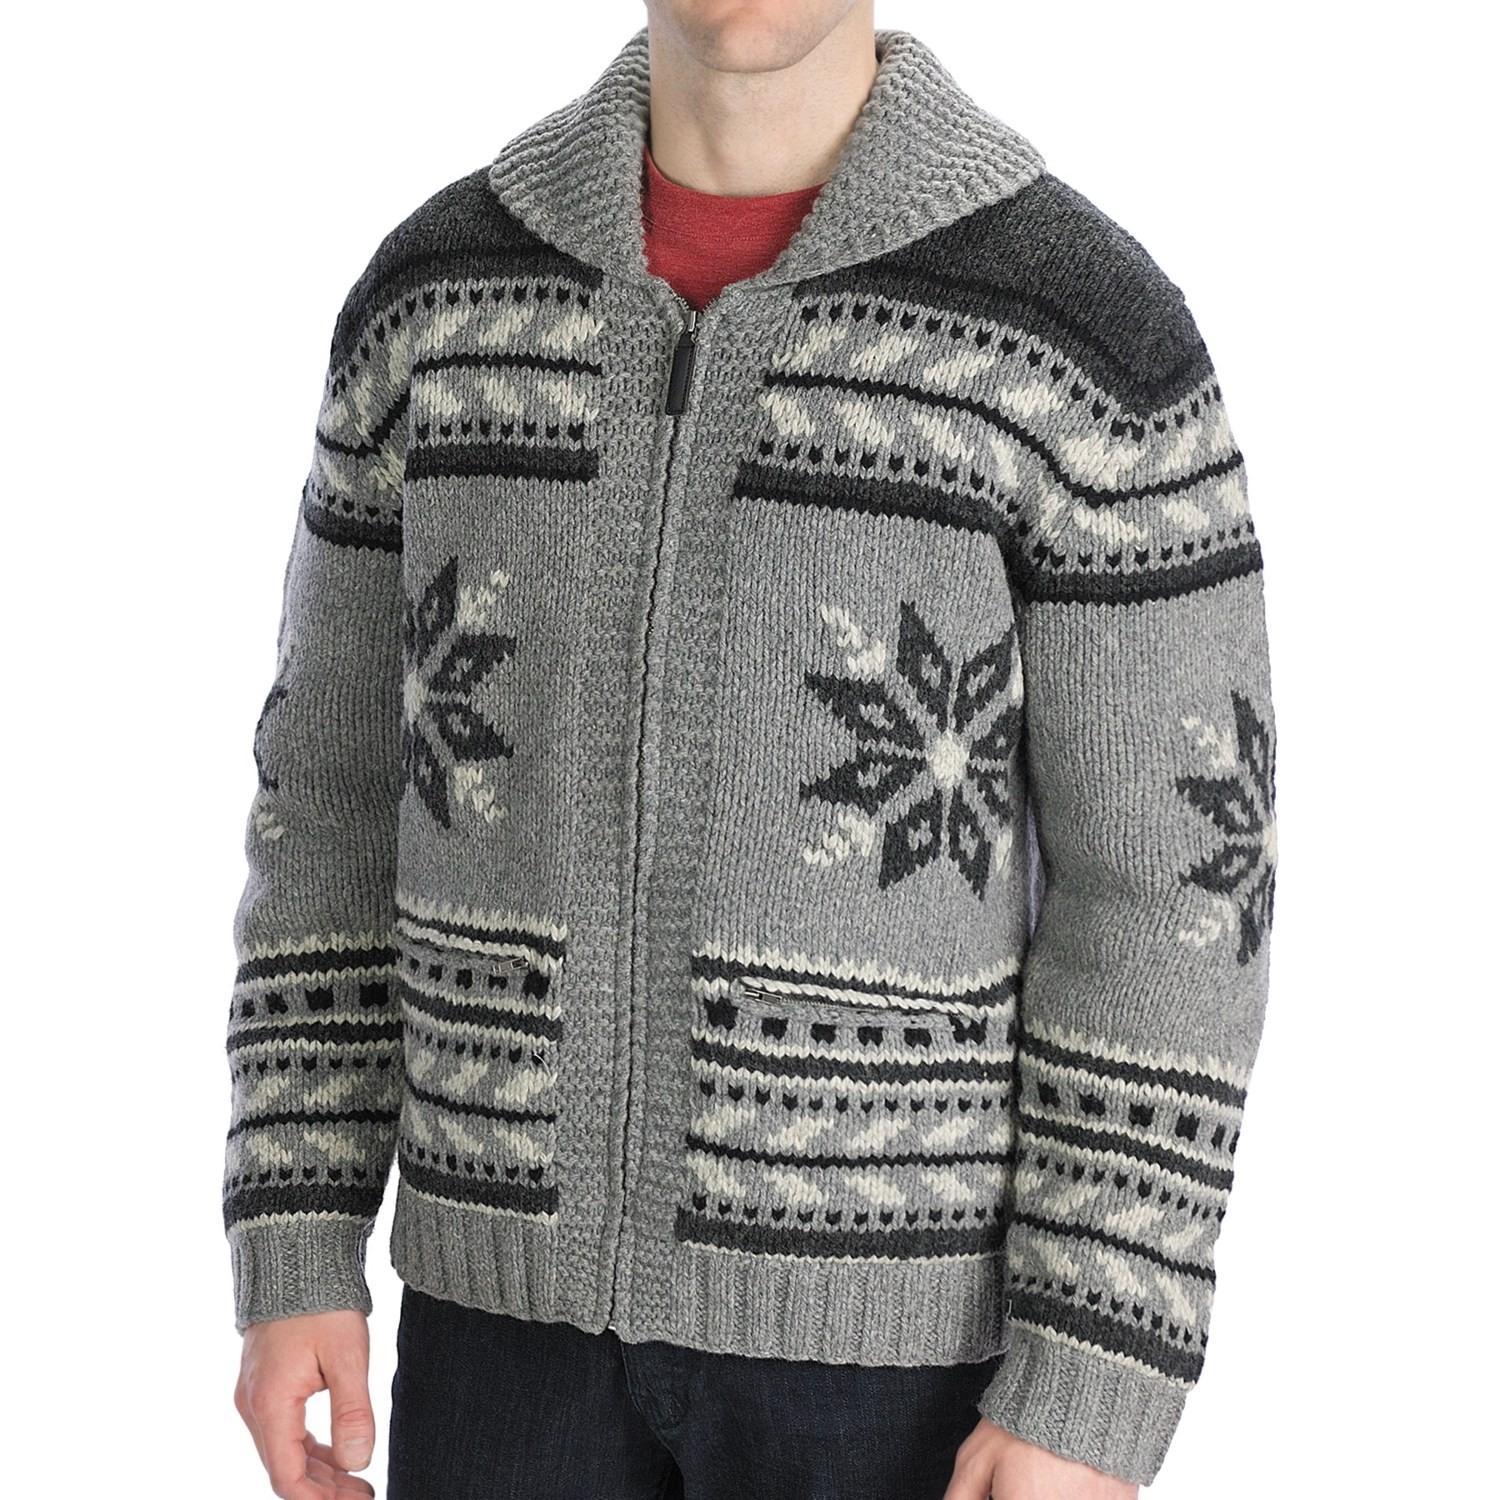 Hand Knitting Designs Sweaters For Men : Neve glockner hand knit cardigan sweater for men